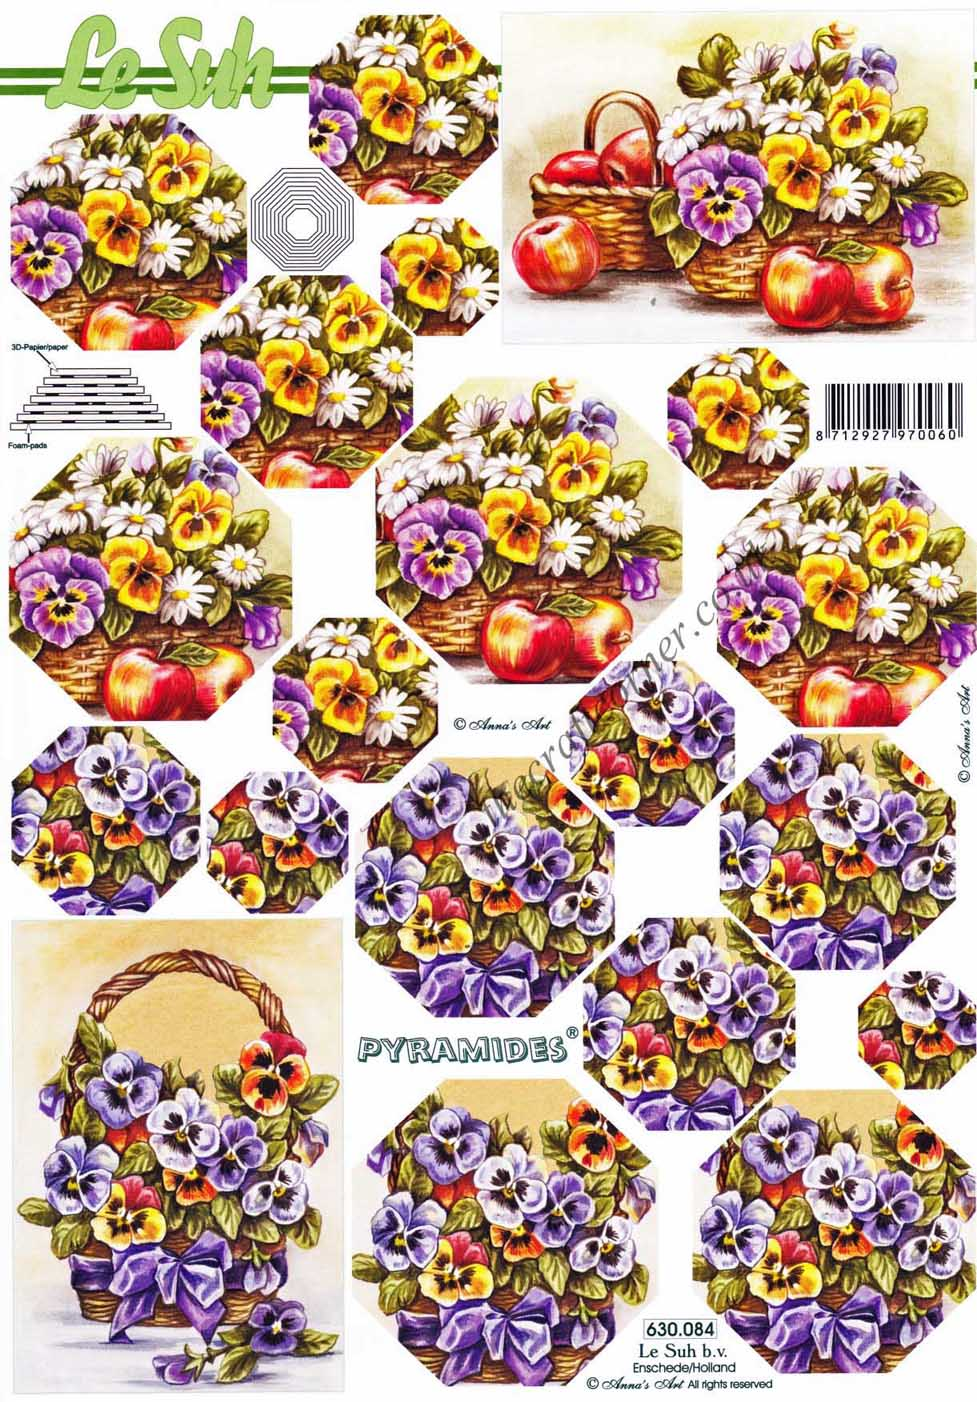 pansies 3d decoupage pyramides by le suh